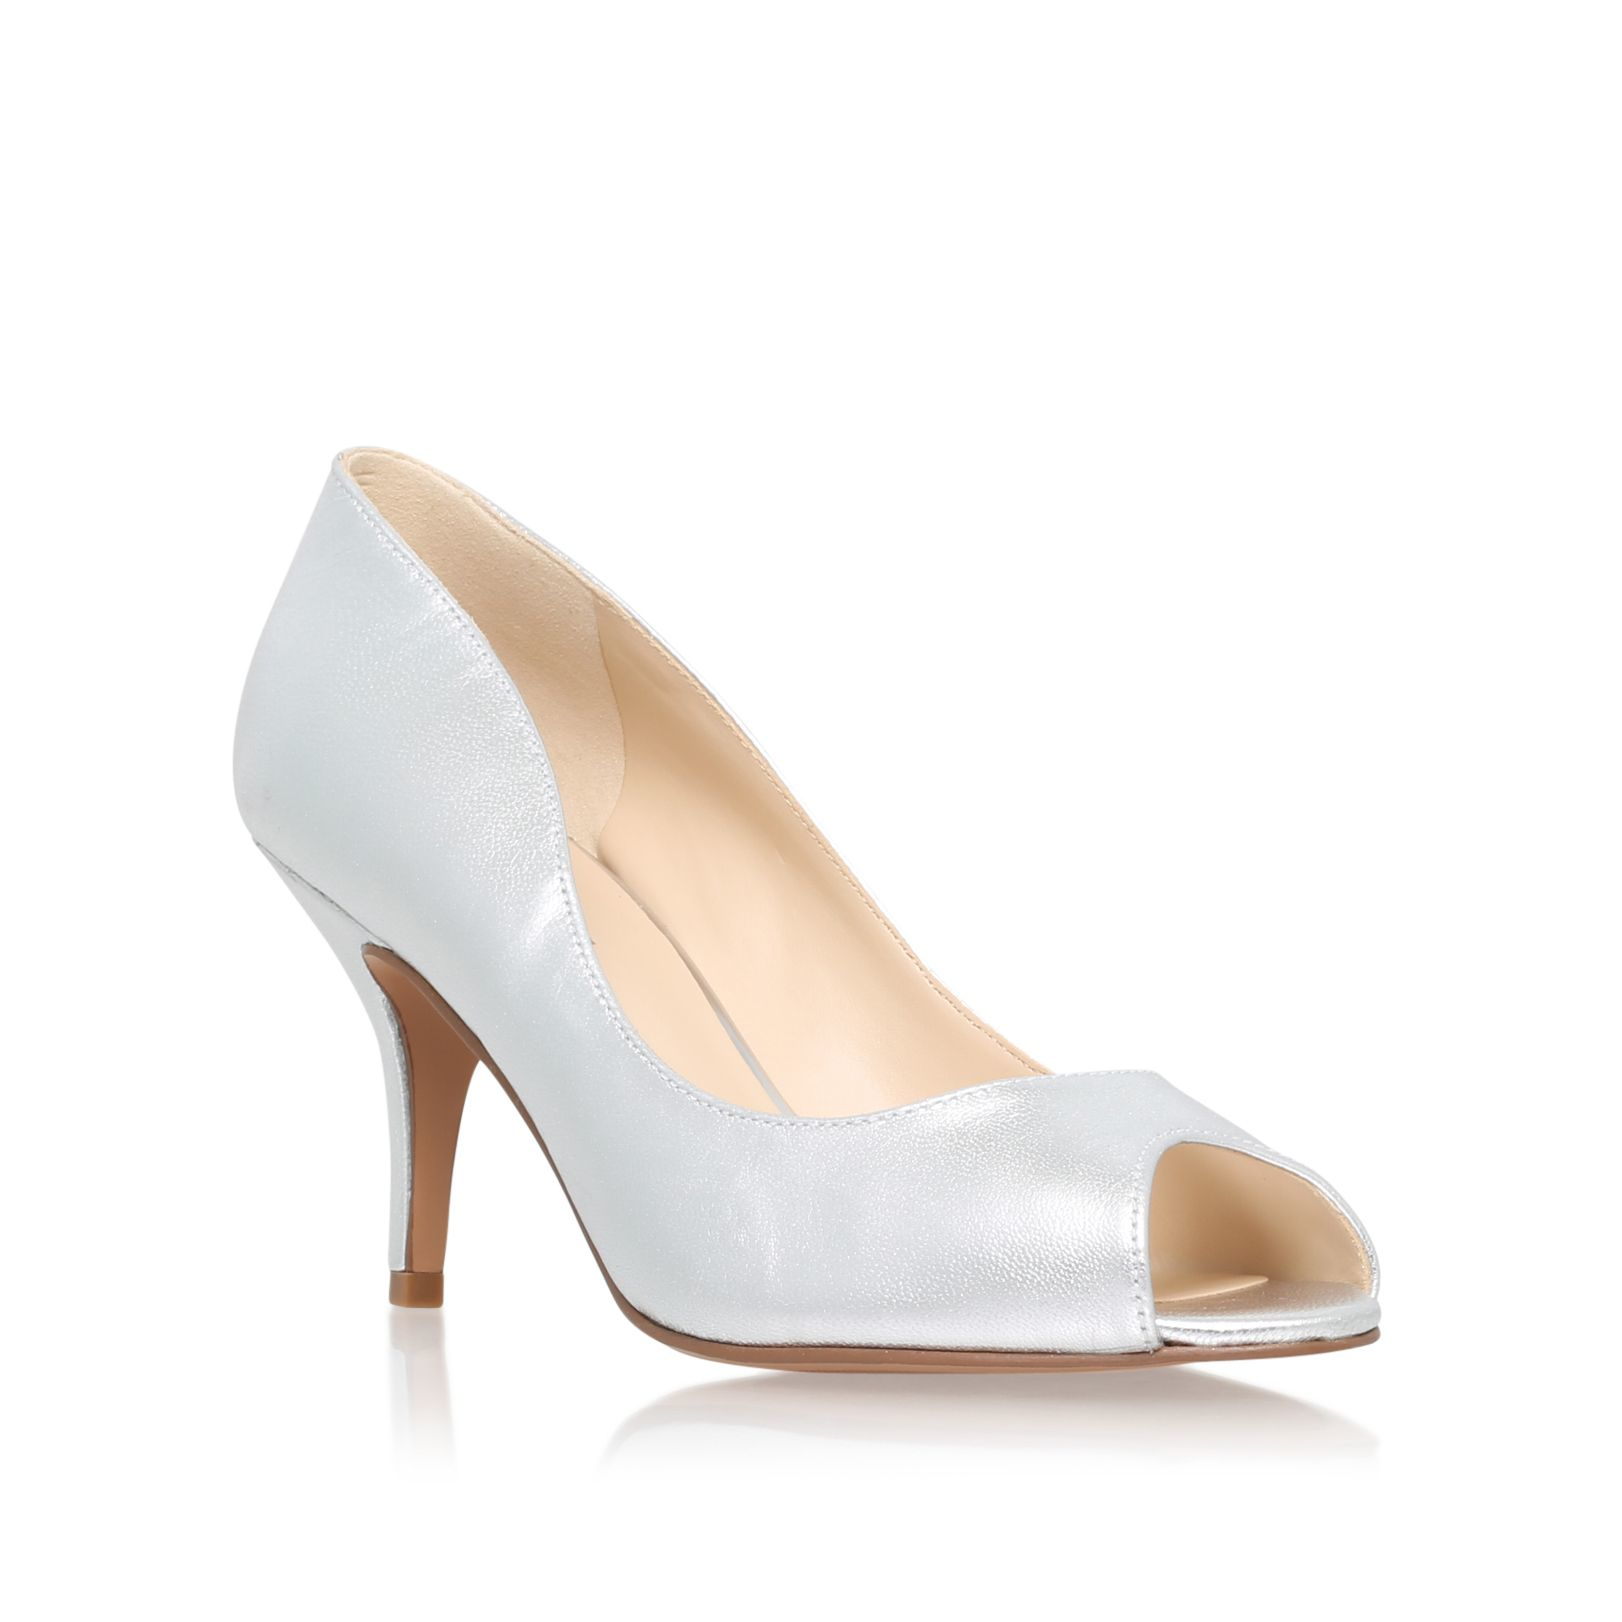 Silver Mid Heel Peep Toe Shoes